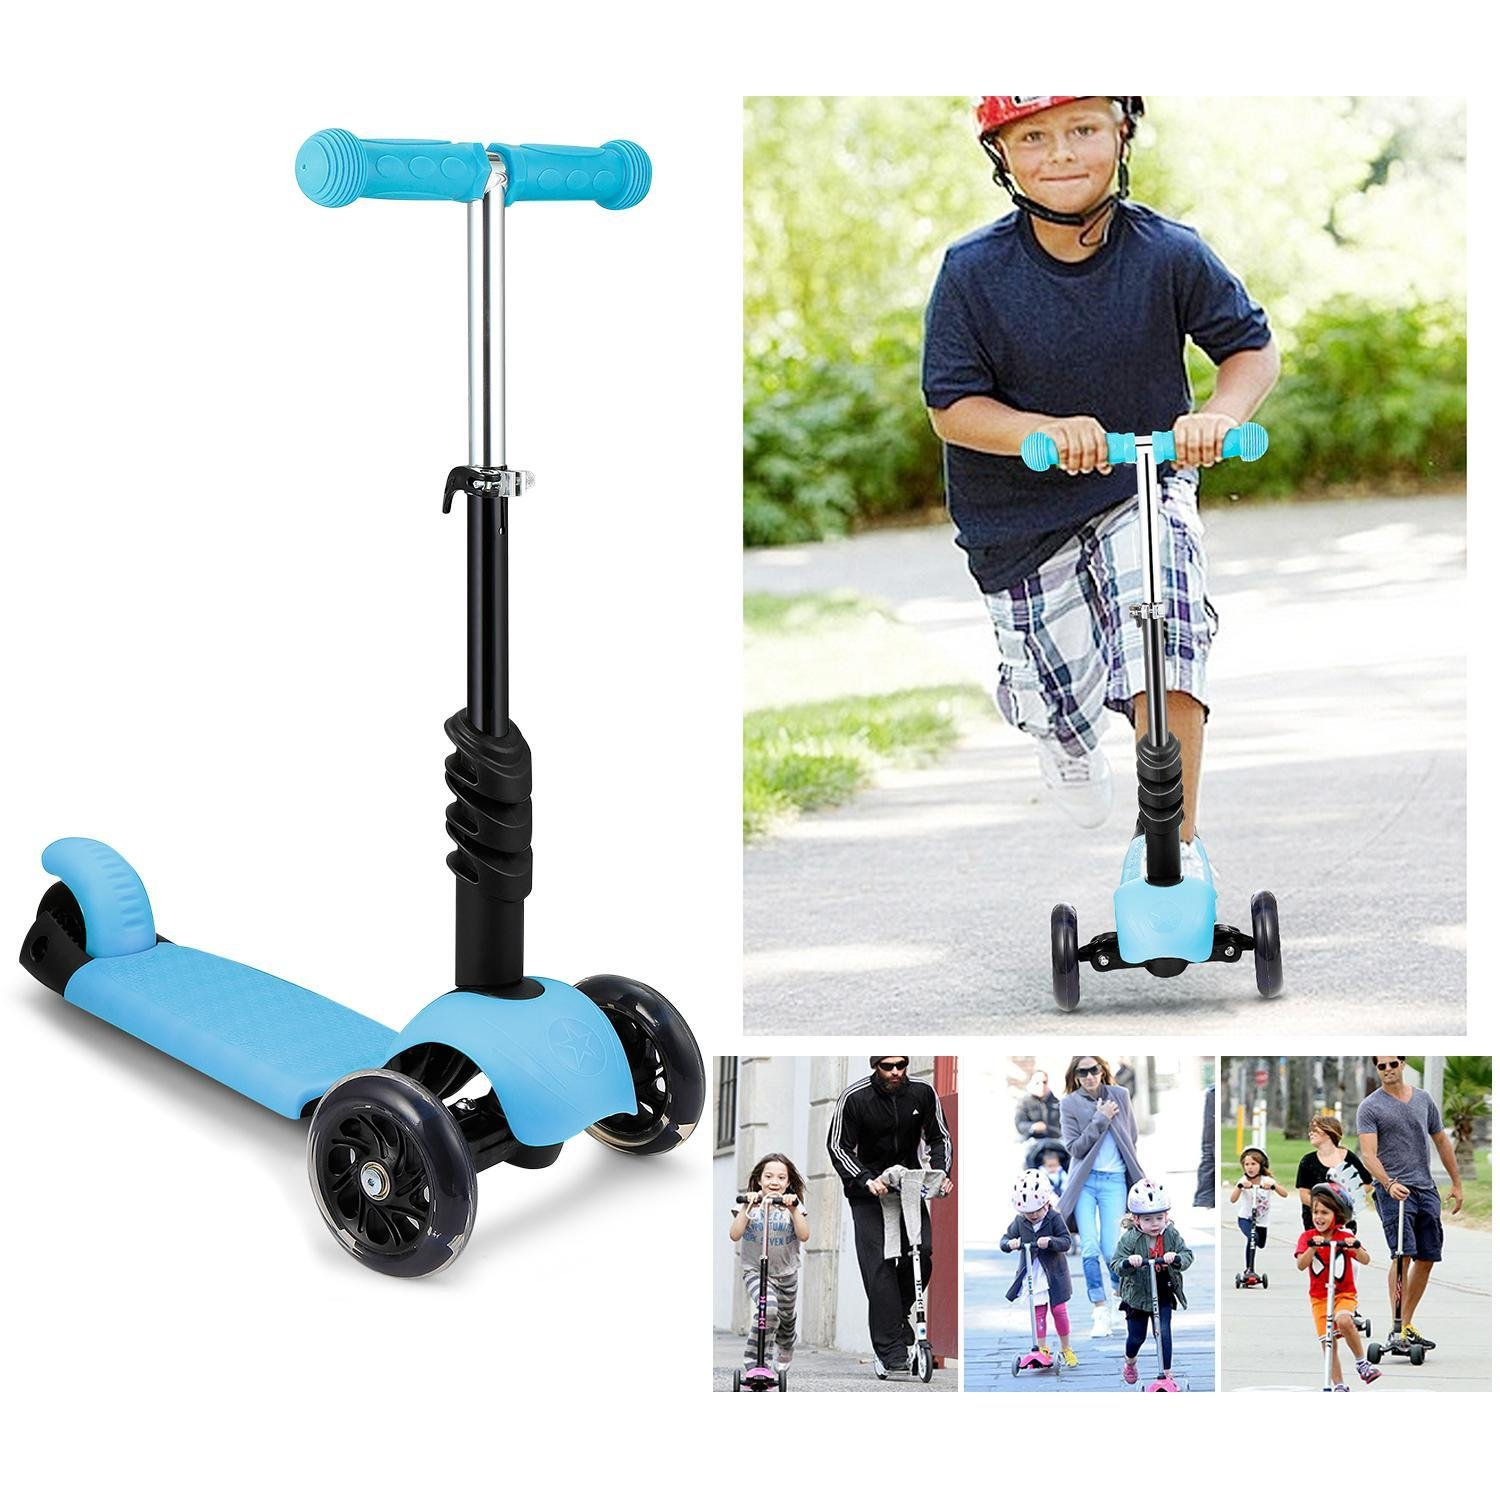 Child 3-in-1 Kick Scooter, 3-Wheel Toddler Scooter with Removable Seat Adjustable Handlebar LED Flashing Wheels �_�3-10 Years Old�_� (US STOCK)